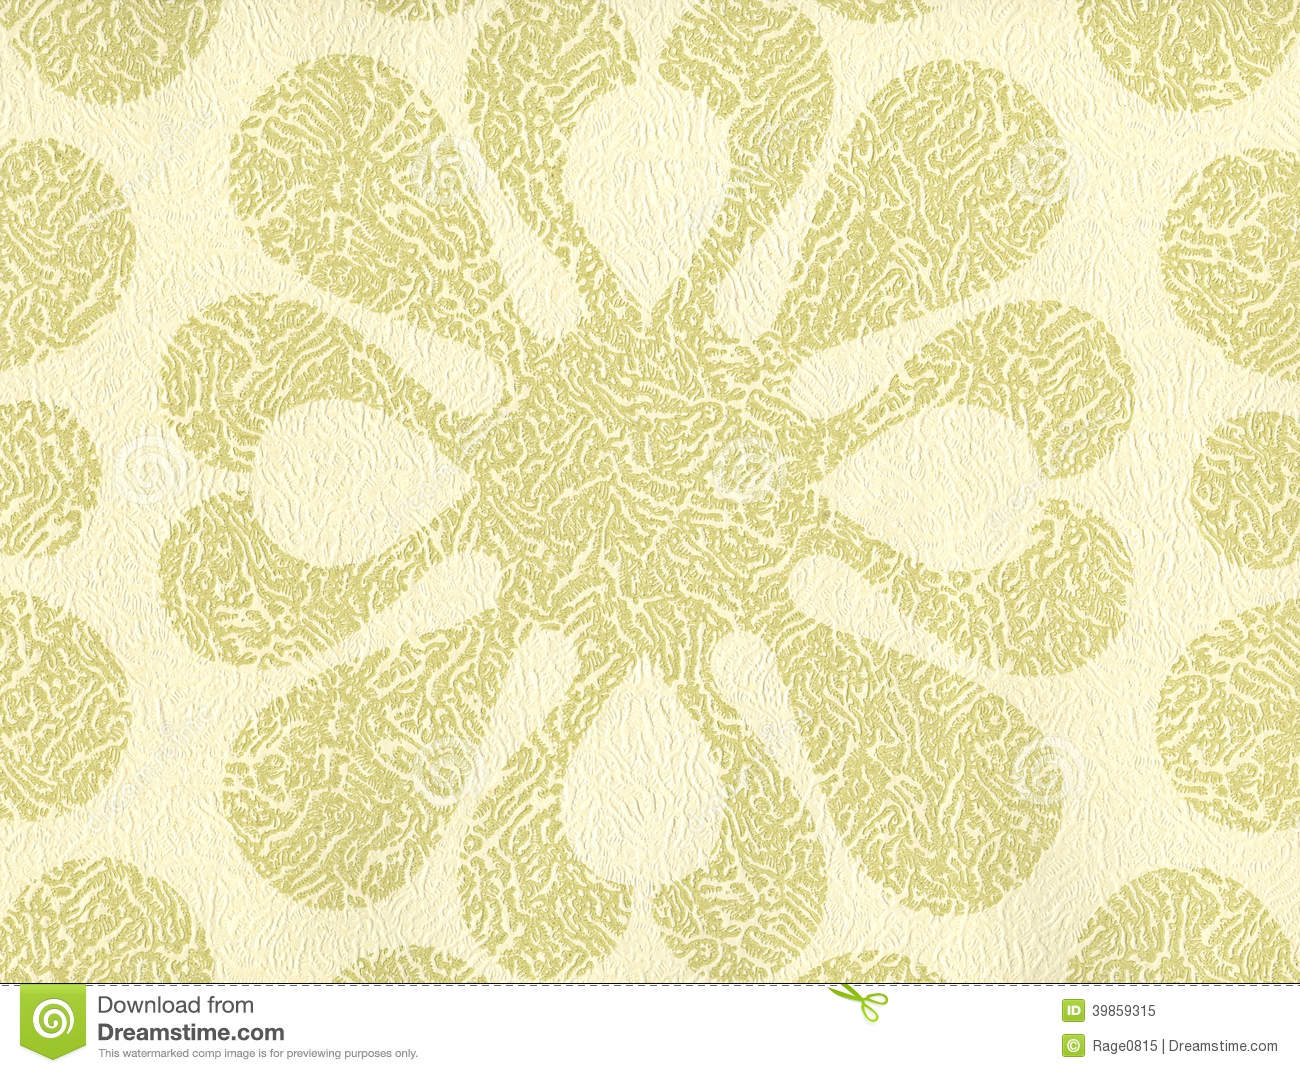 High Resolution Wallpaper With Floral Pattern Stock Image Image